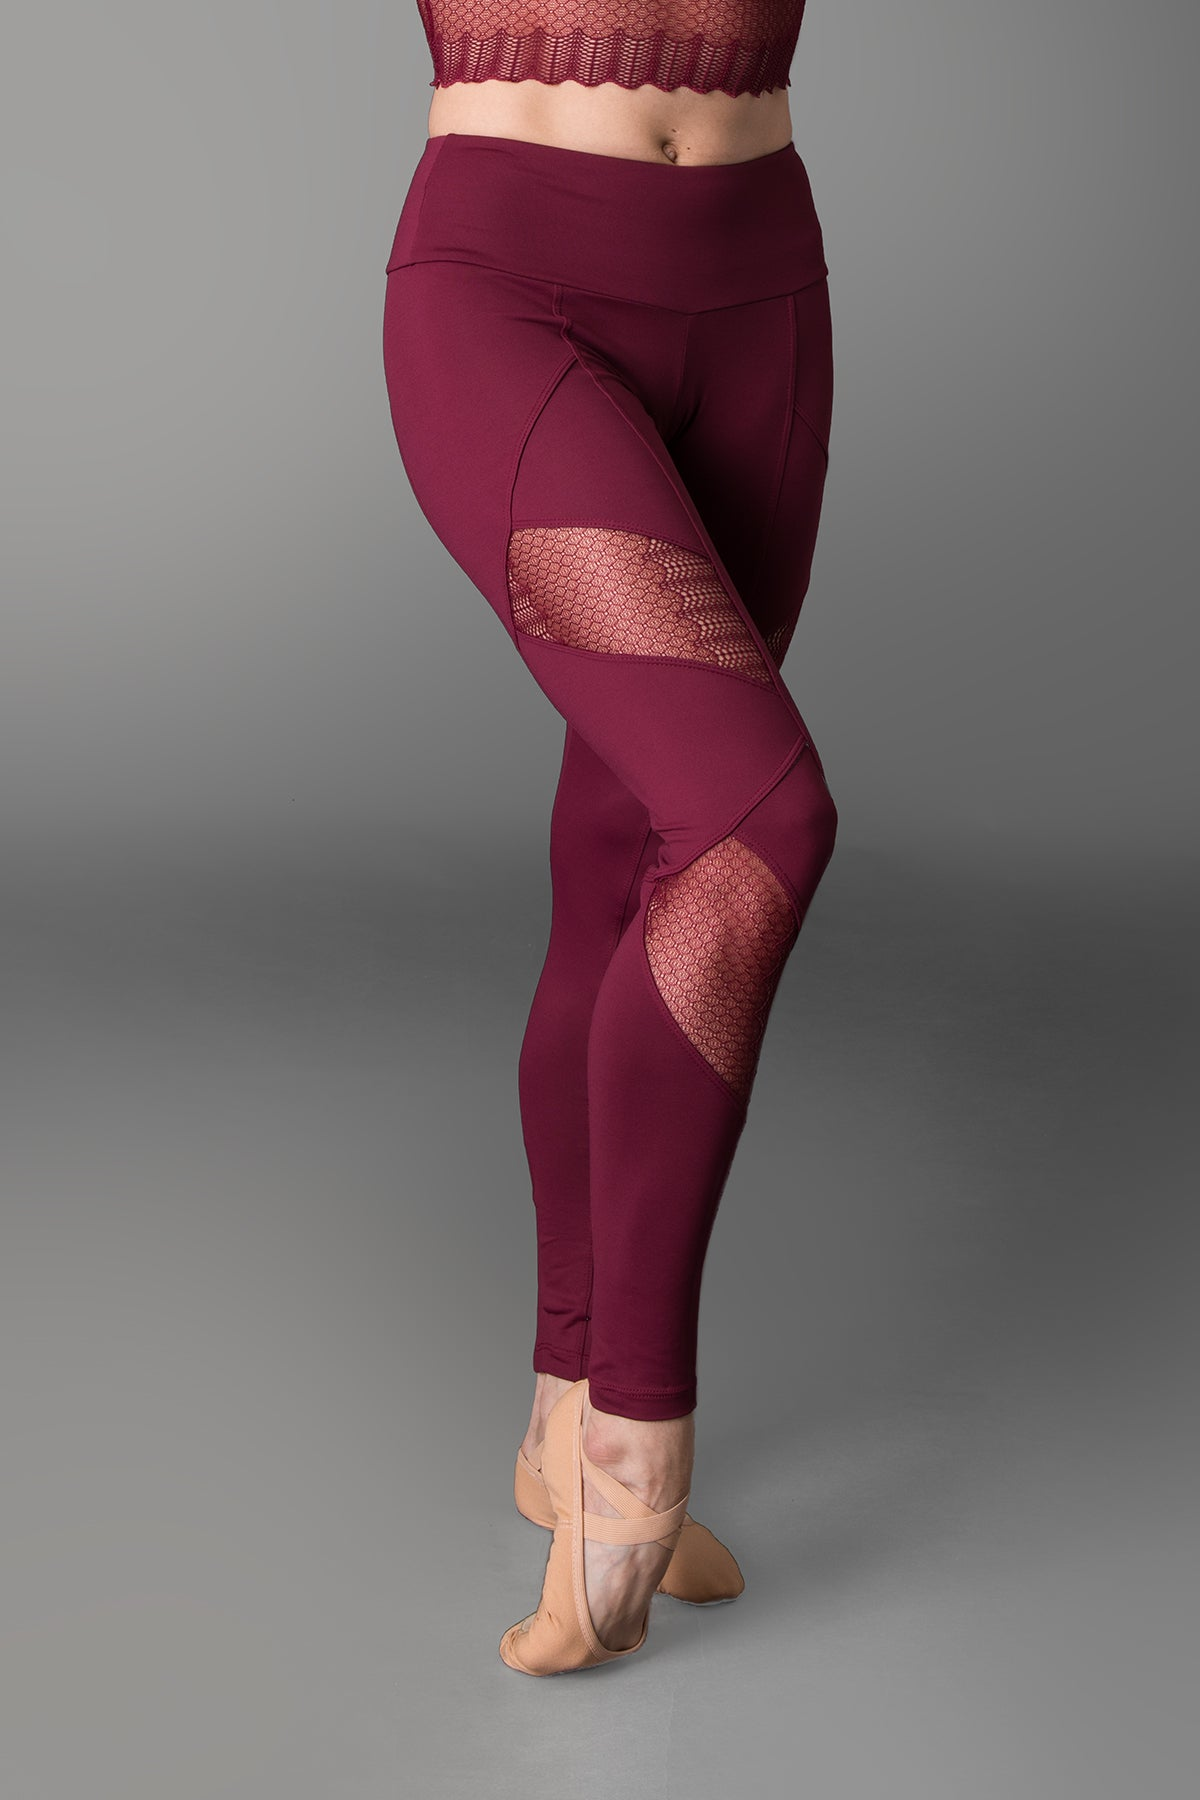 So Danca Sara Mearns Lace Insert Leggings - RDE1796